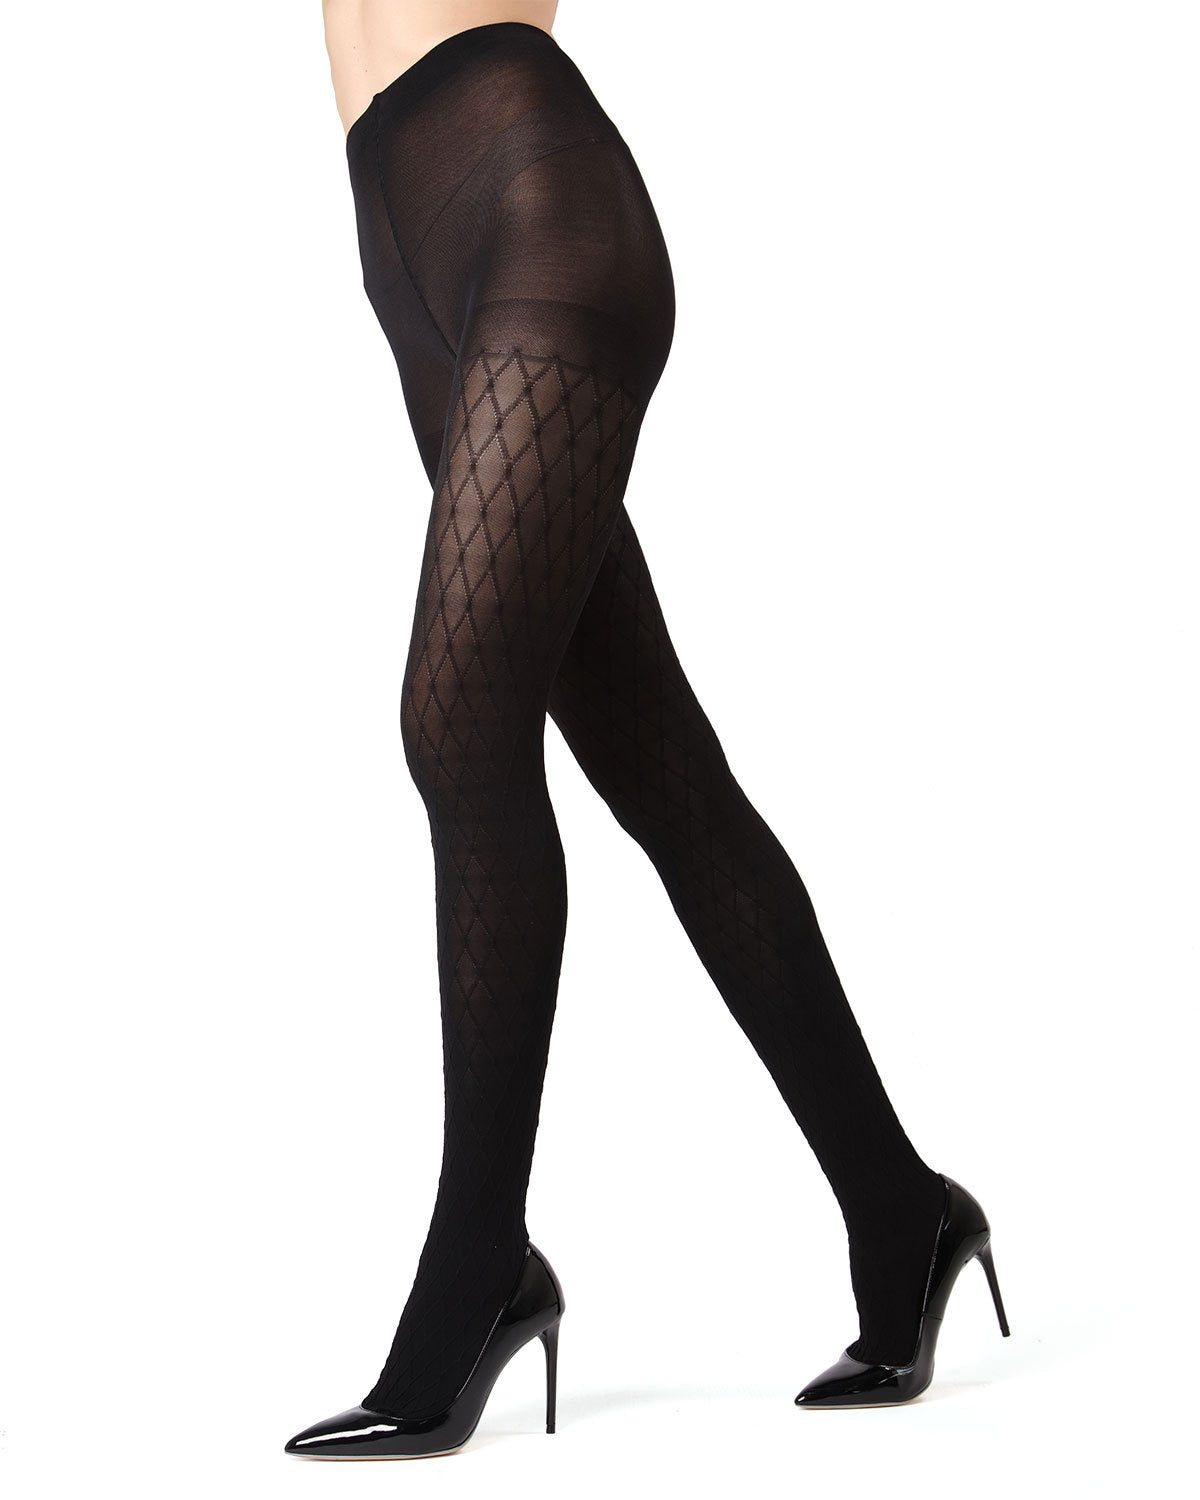 Extravagant Diamond Tights